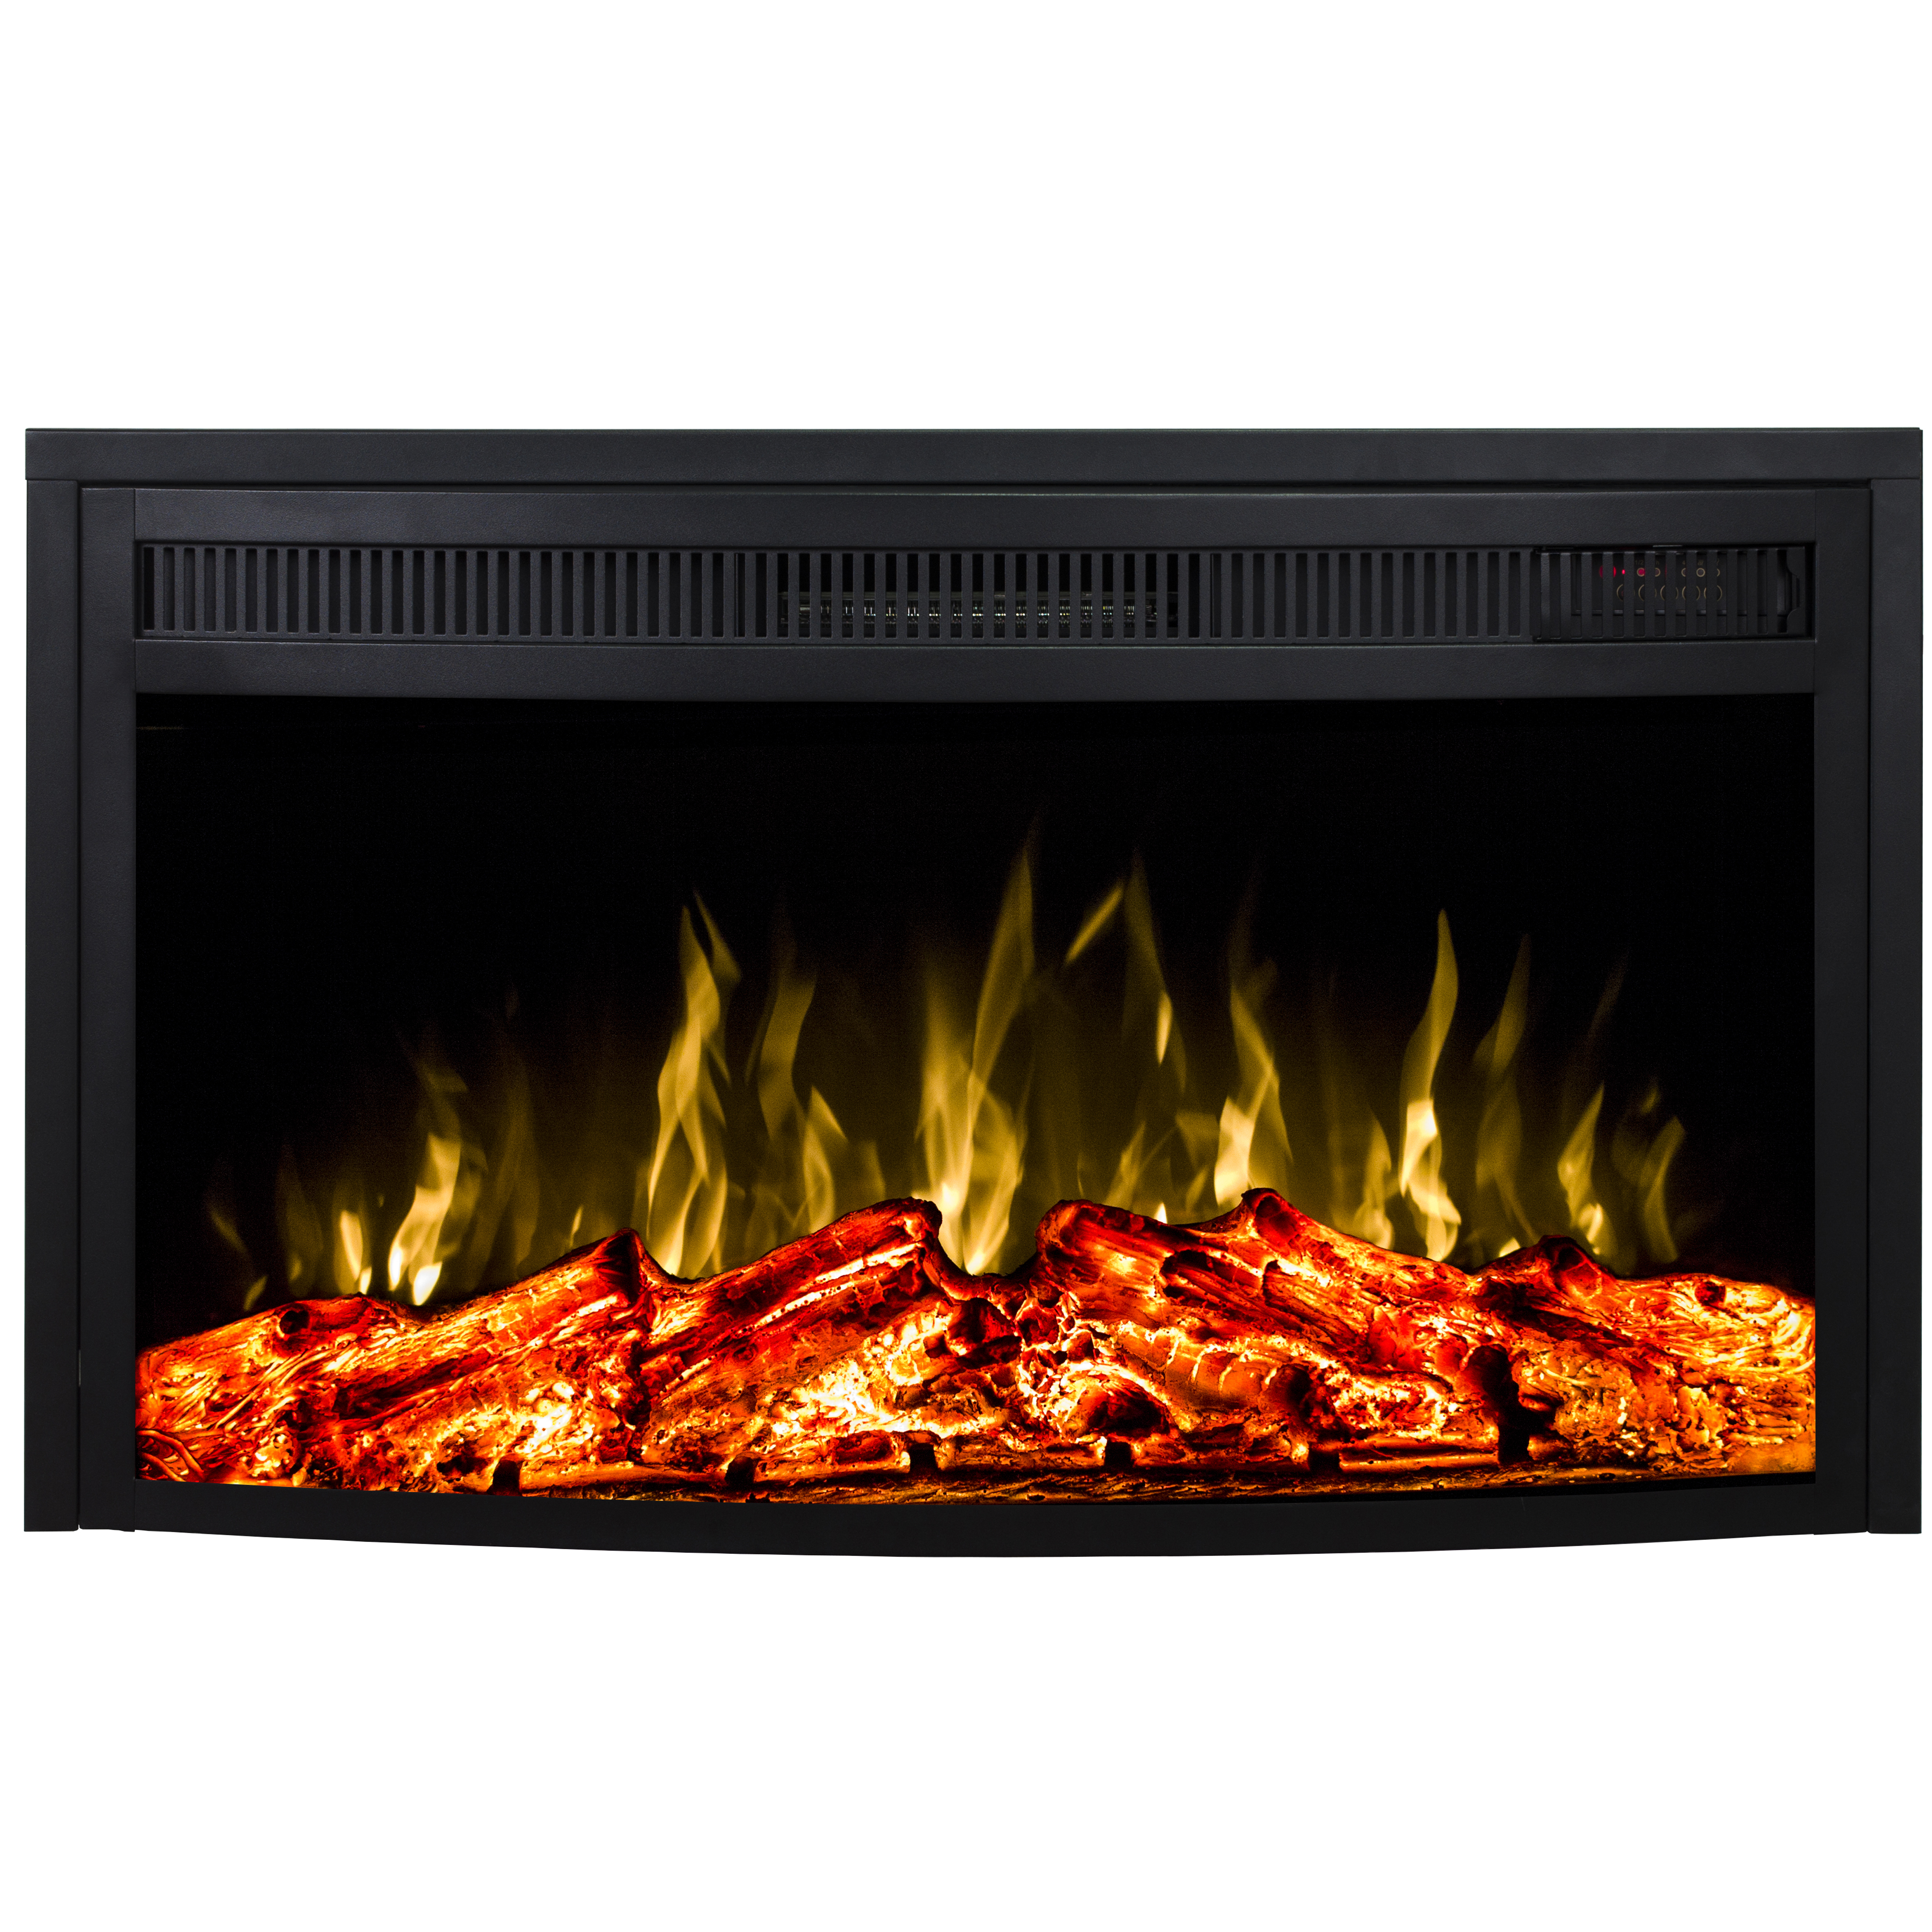 Pleasing 30 Inch Electric Fireplace Insert Home Interior And Landscaping Ologienasavecom